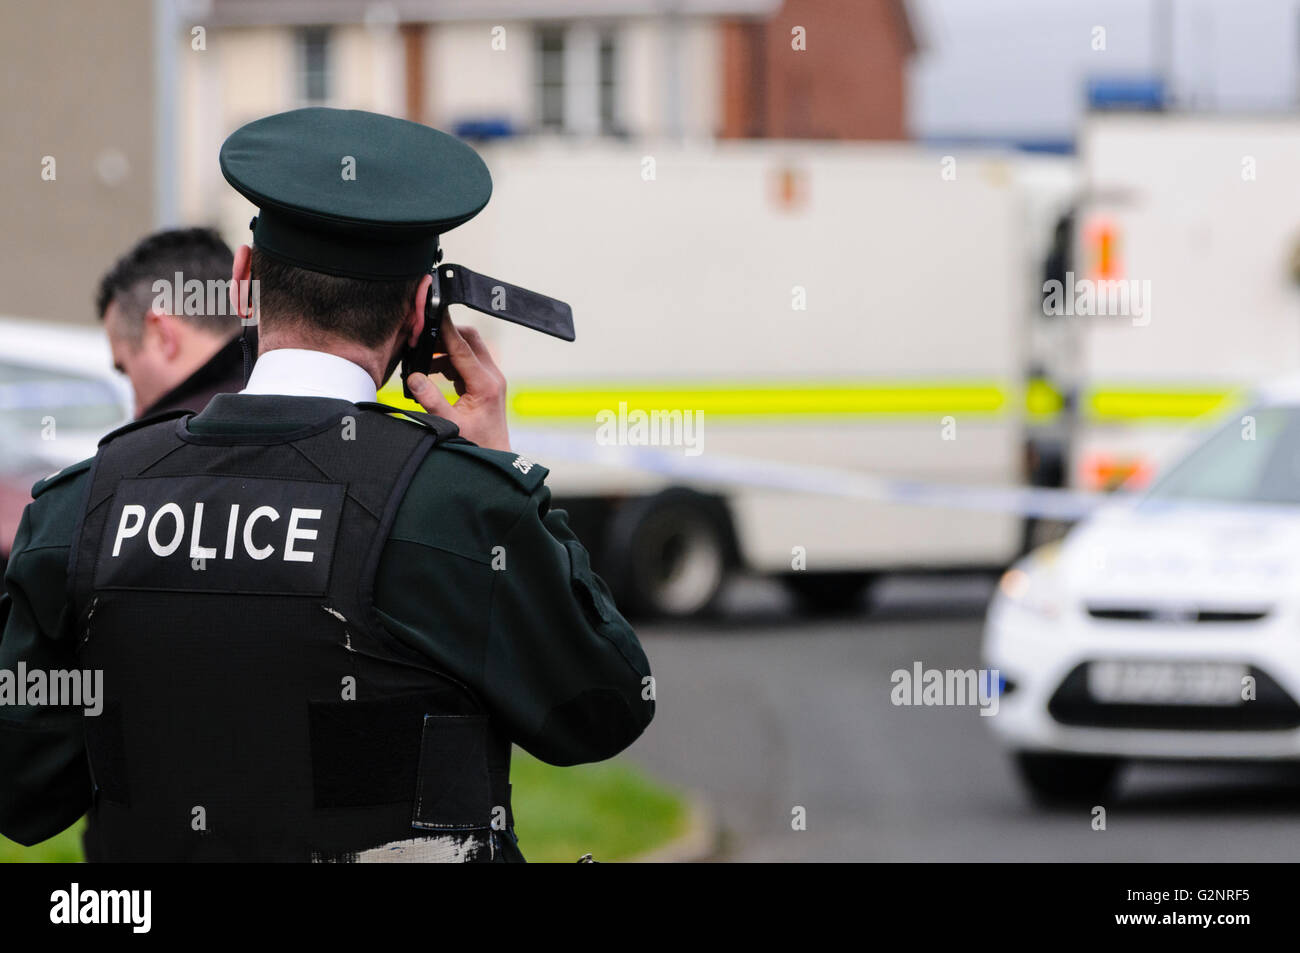 A PSNI police officer makes a telephone call during a bomb scare security alert in Rathcoole, NORTHERN IRELAND, - Stock Image